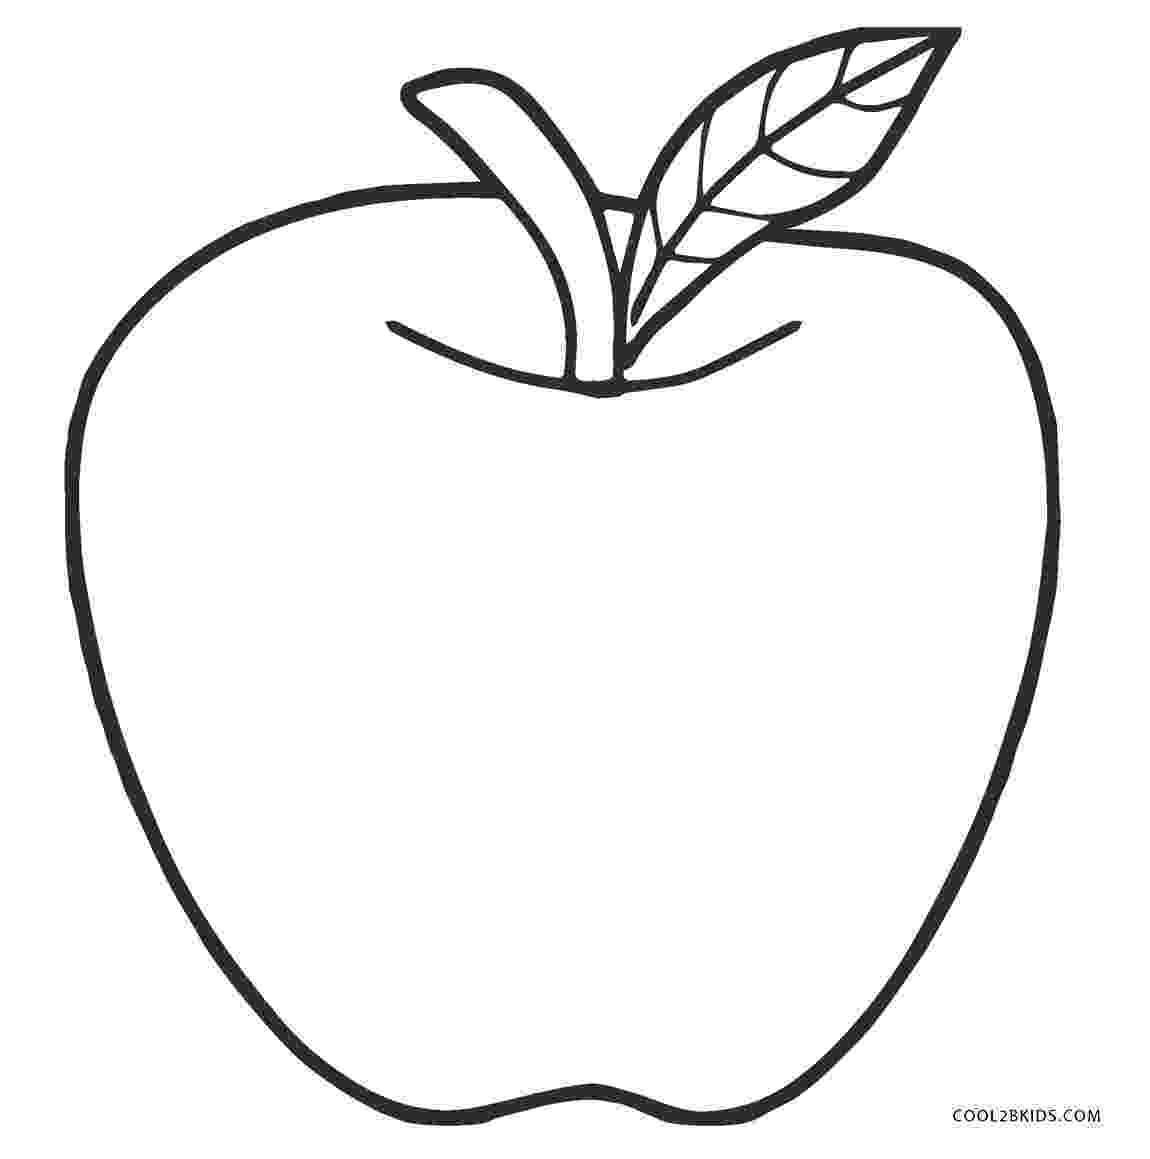 coloring page of an apple coloring pages for kids apple coloring pages for kids of an page apple coloring